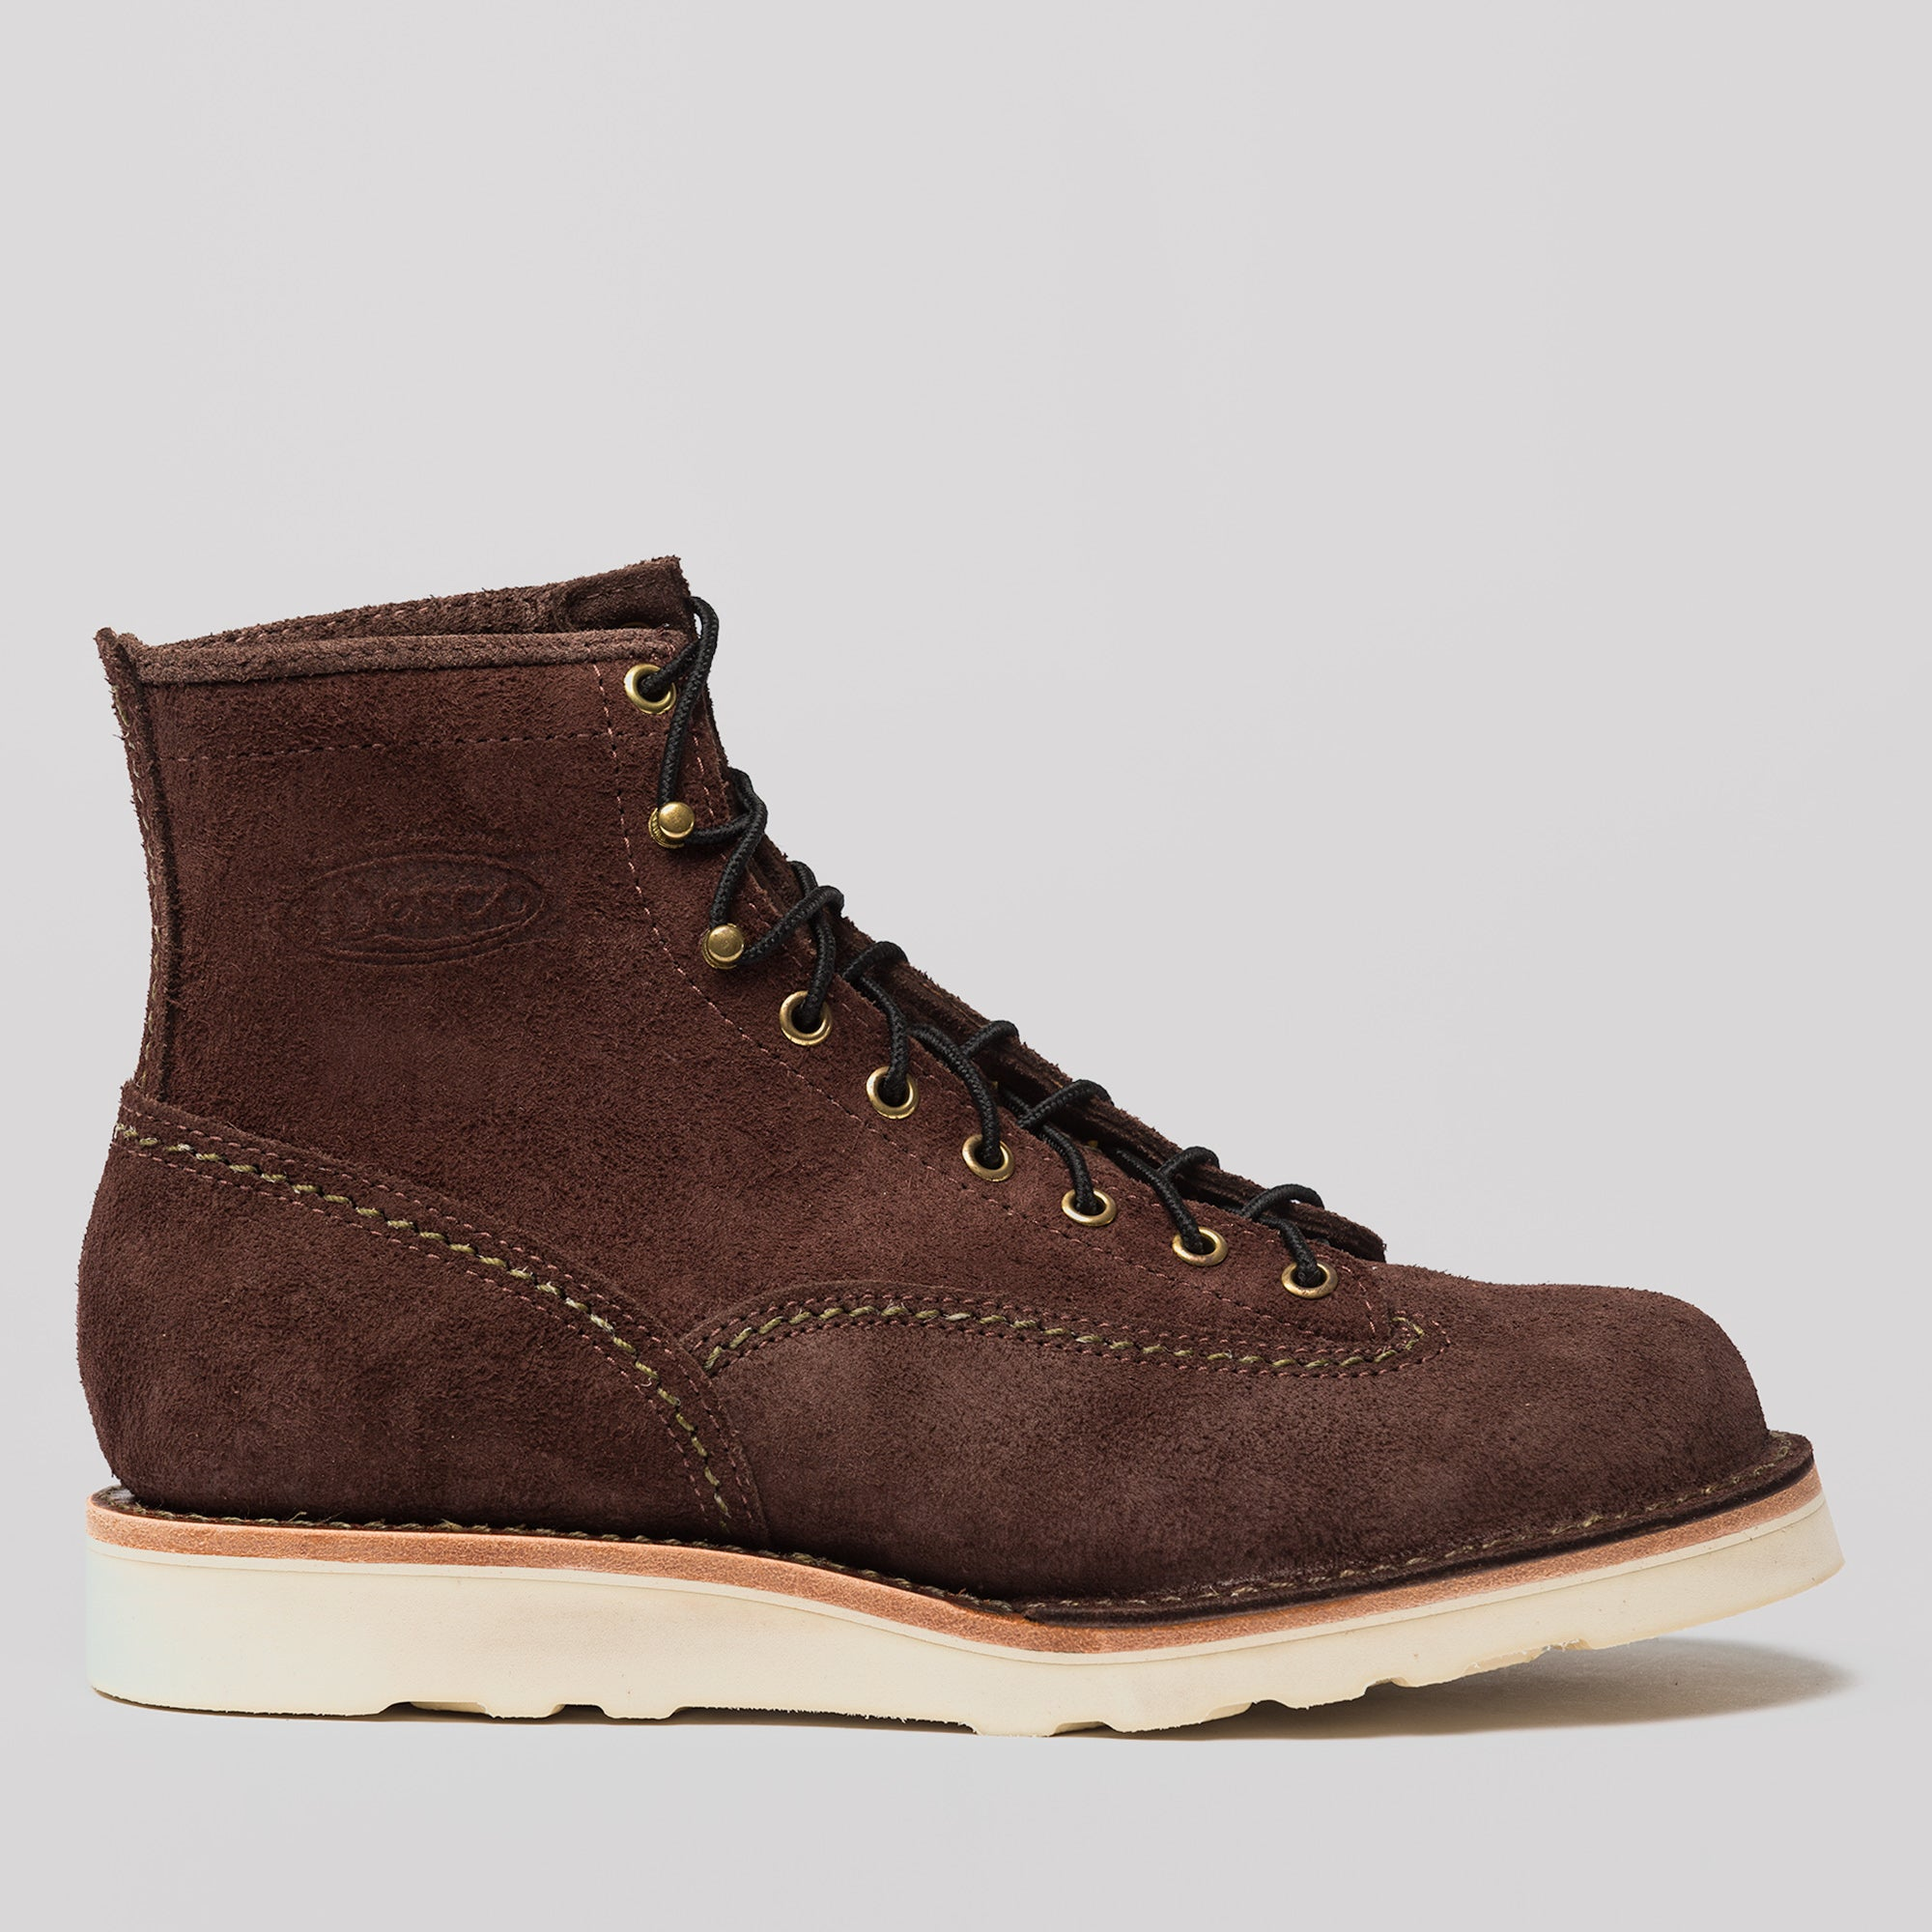 Wesco Ss X Brown Bender Boot Standard Strange Cut Engineer Classic Shoes Iron Safety Boots Leather Dark